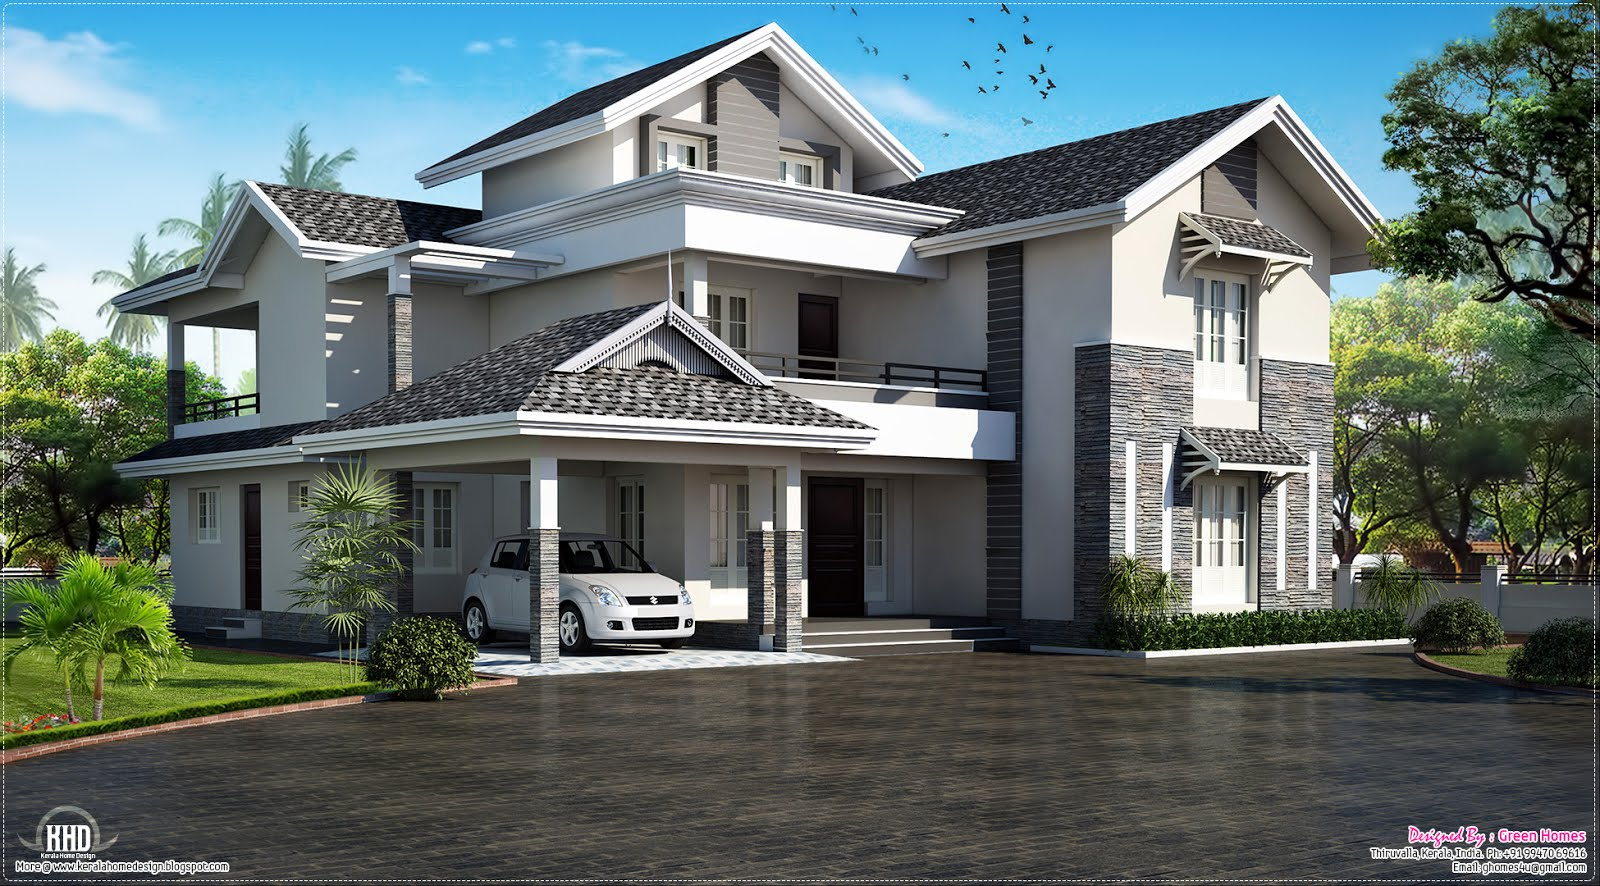 Modern sloping roof house villa design kerala home Designer house